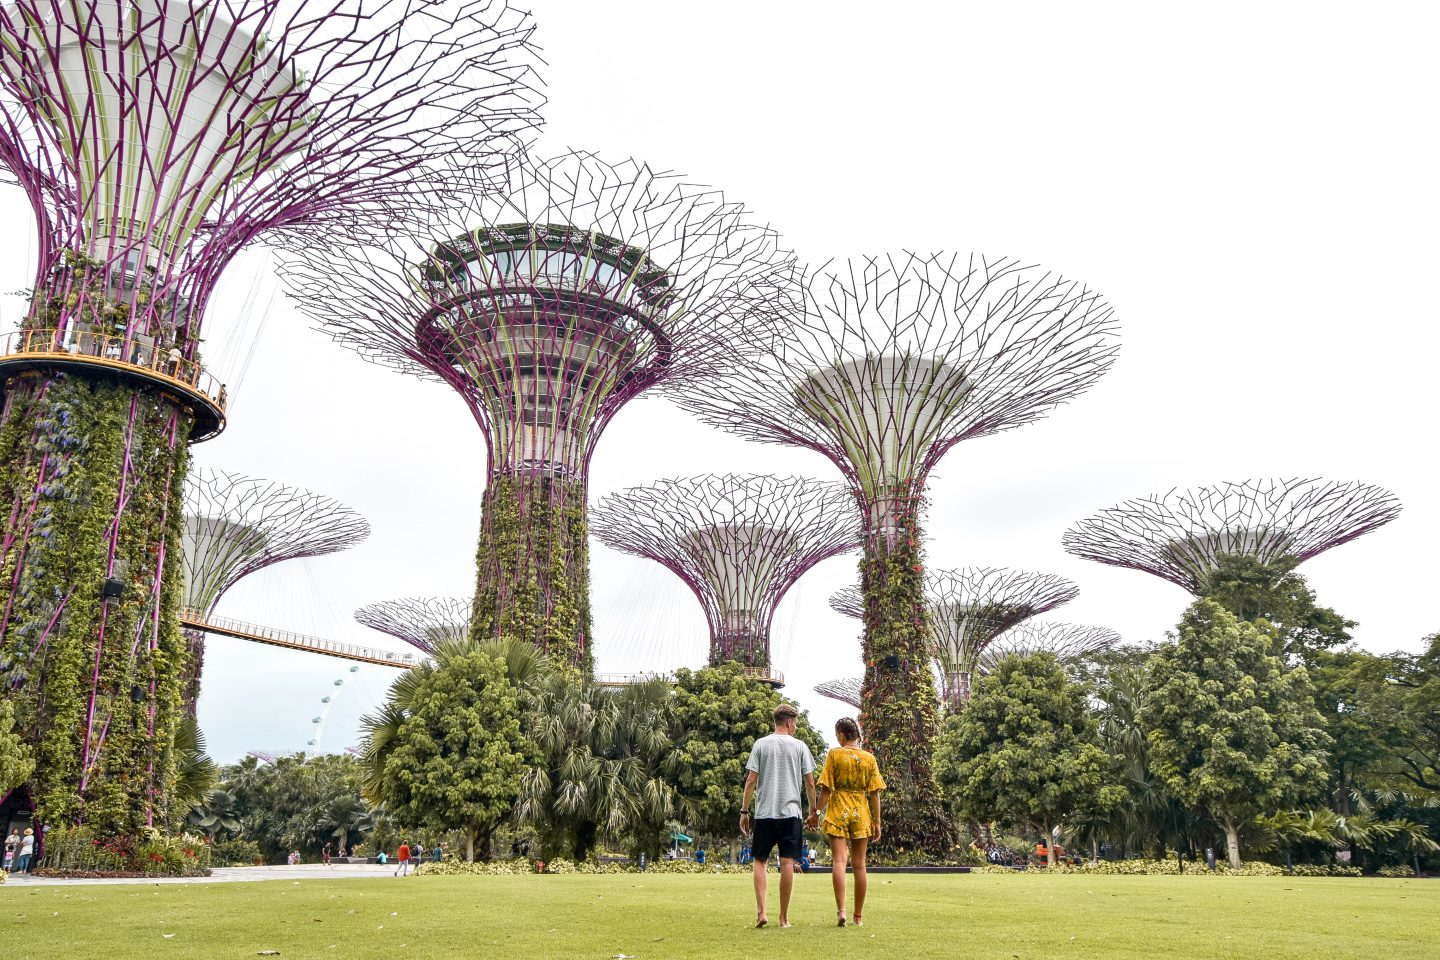 Wanderers & Warriors - Charlie & Lauren UK Travel Couple - Best Things To Do In Singapore Itinerary